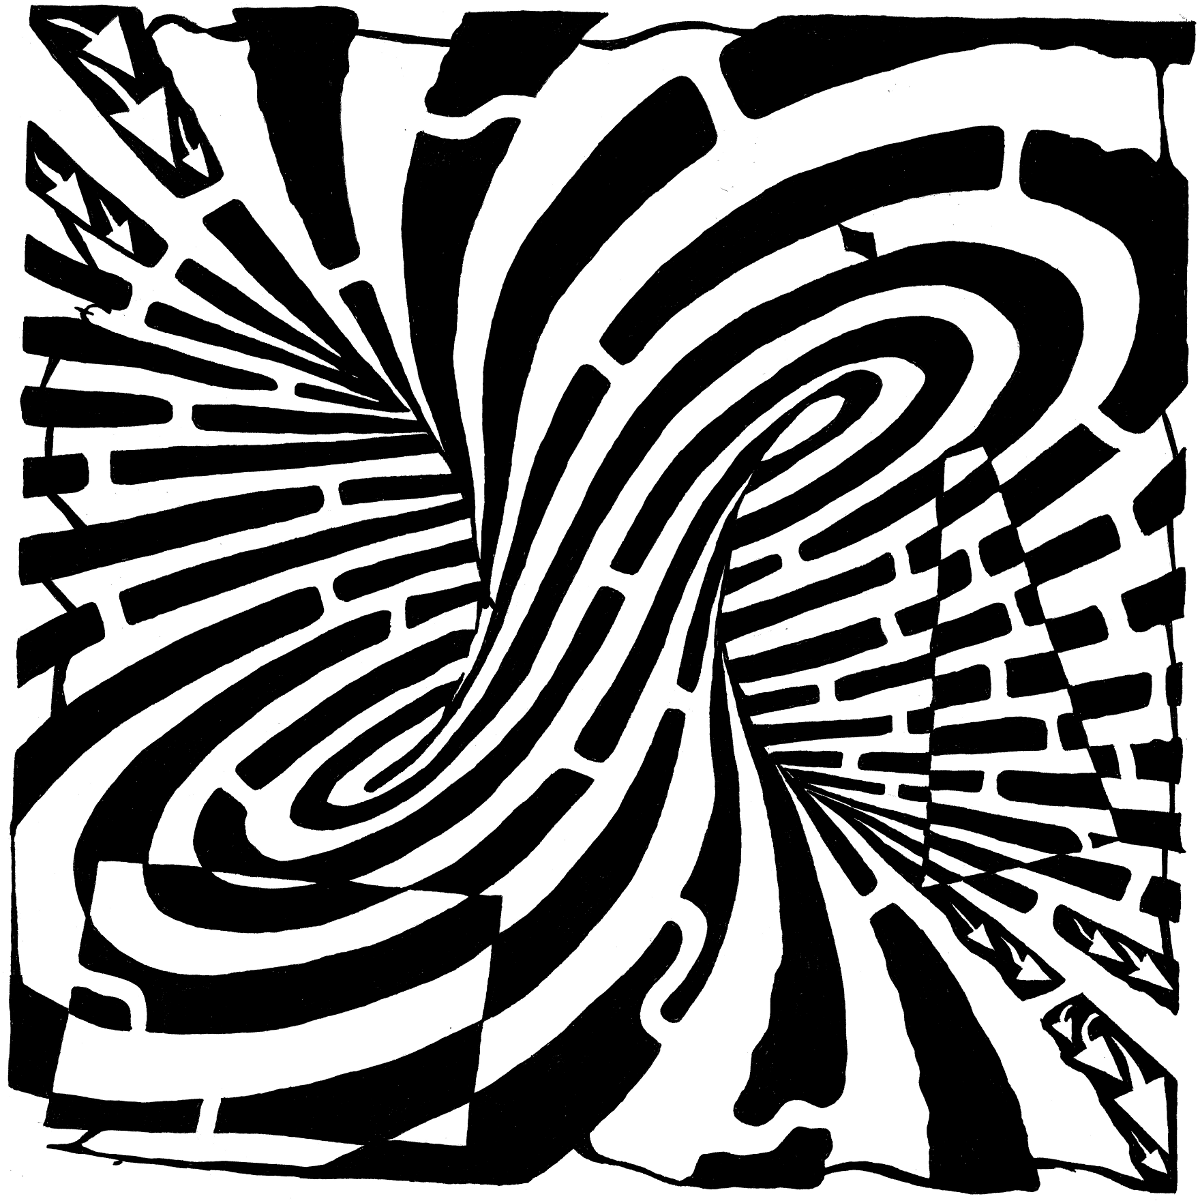 Drawn optical illusion basketball And coloring and pages free